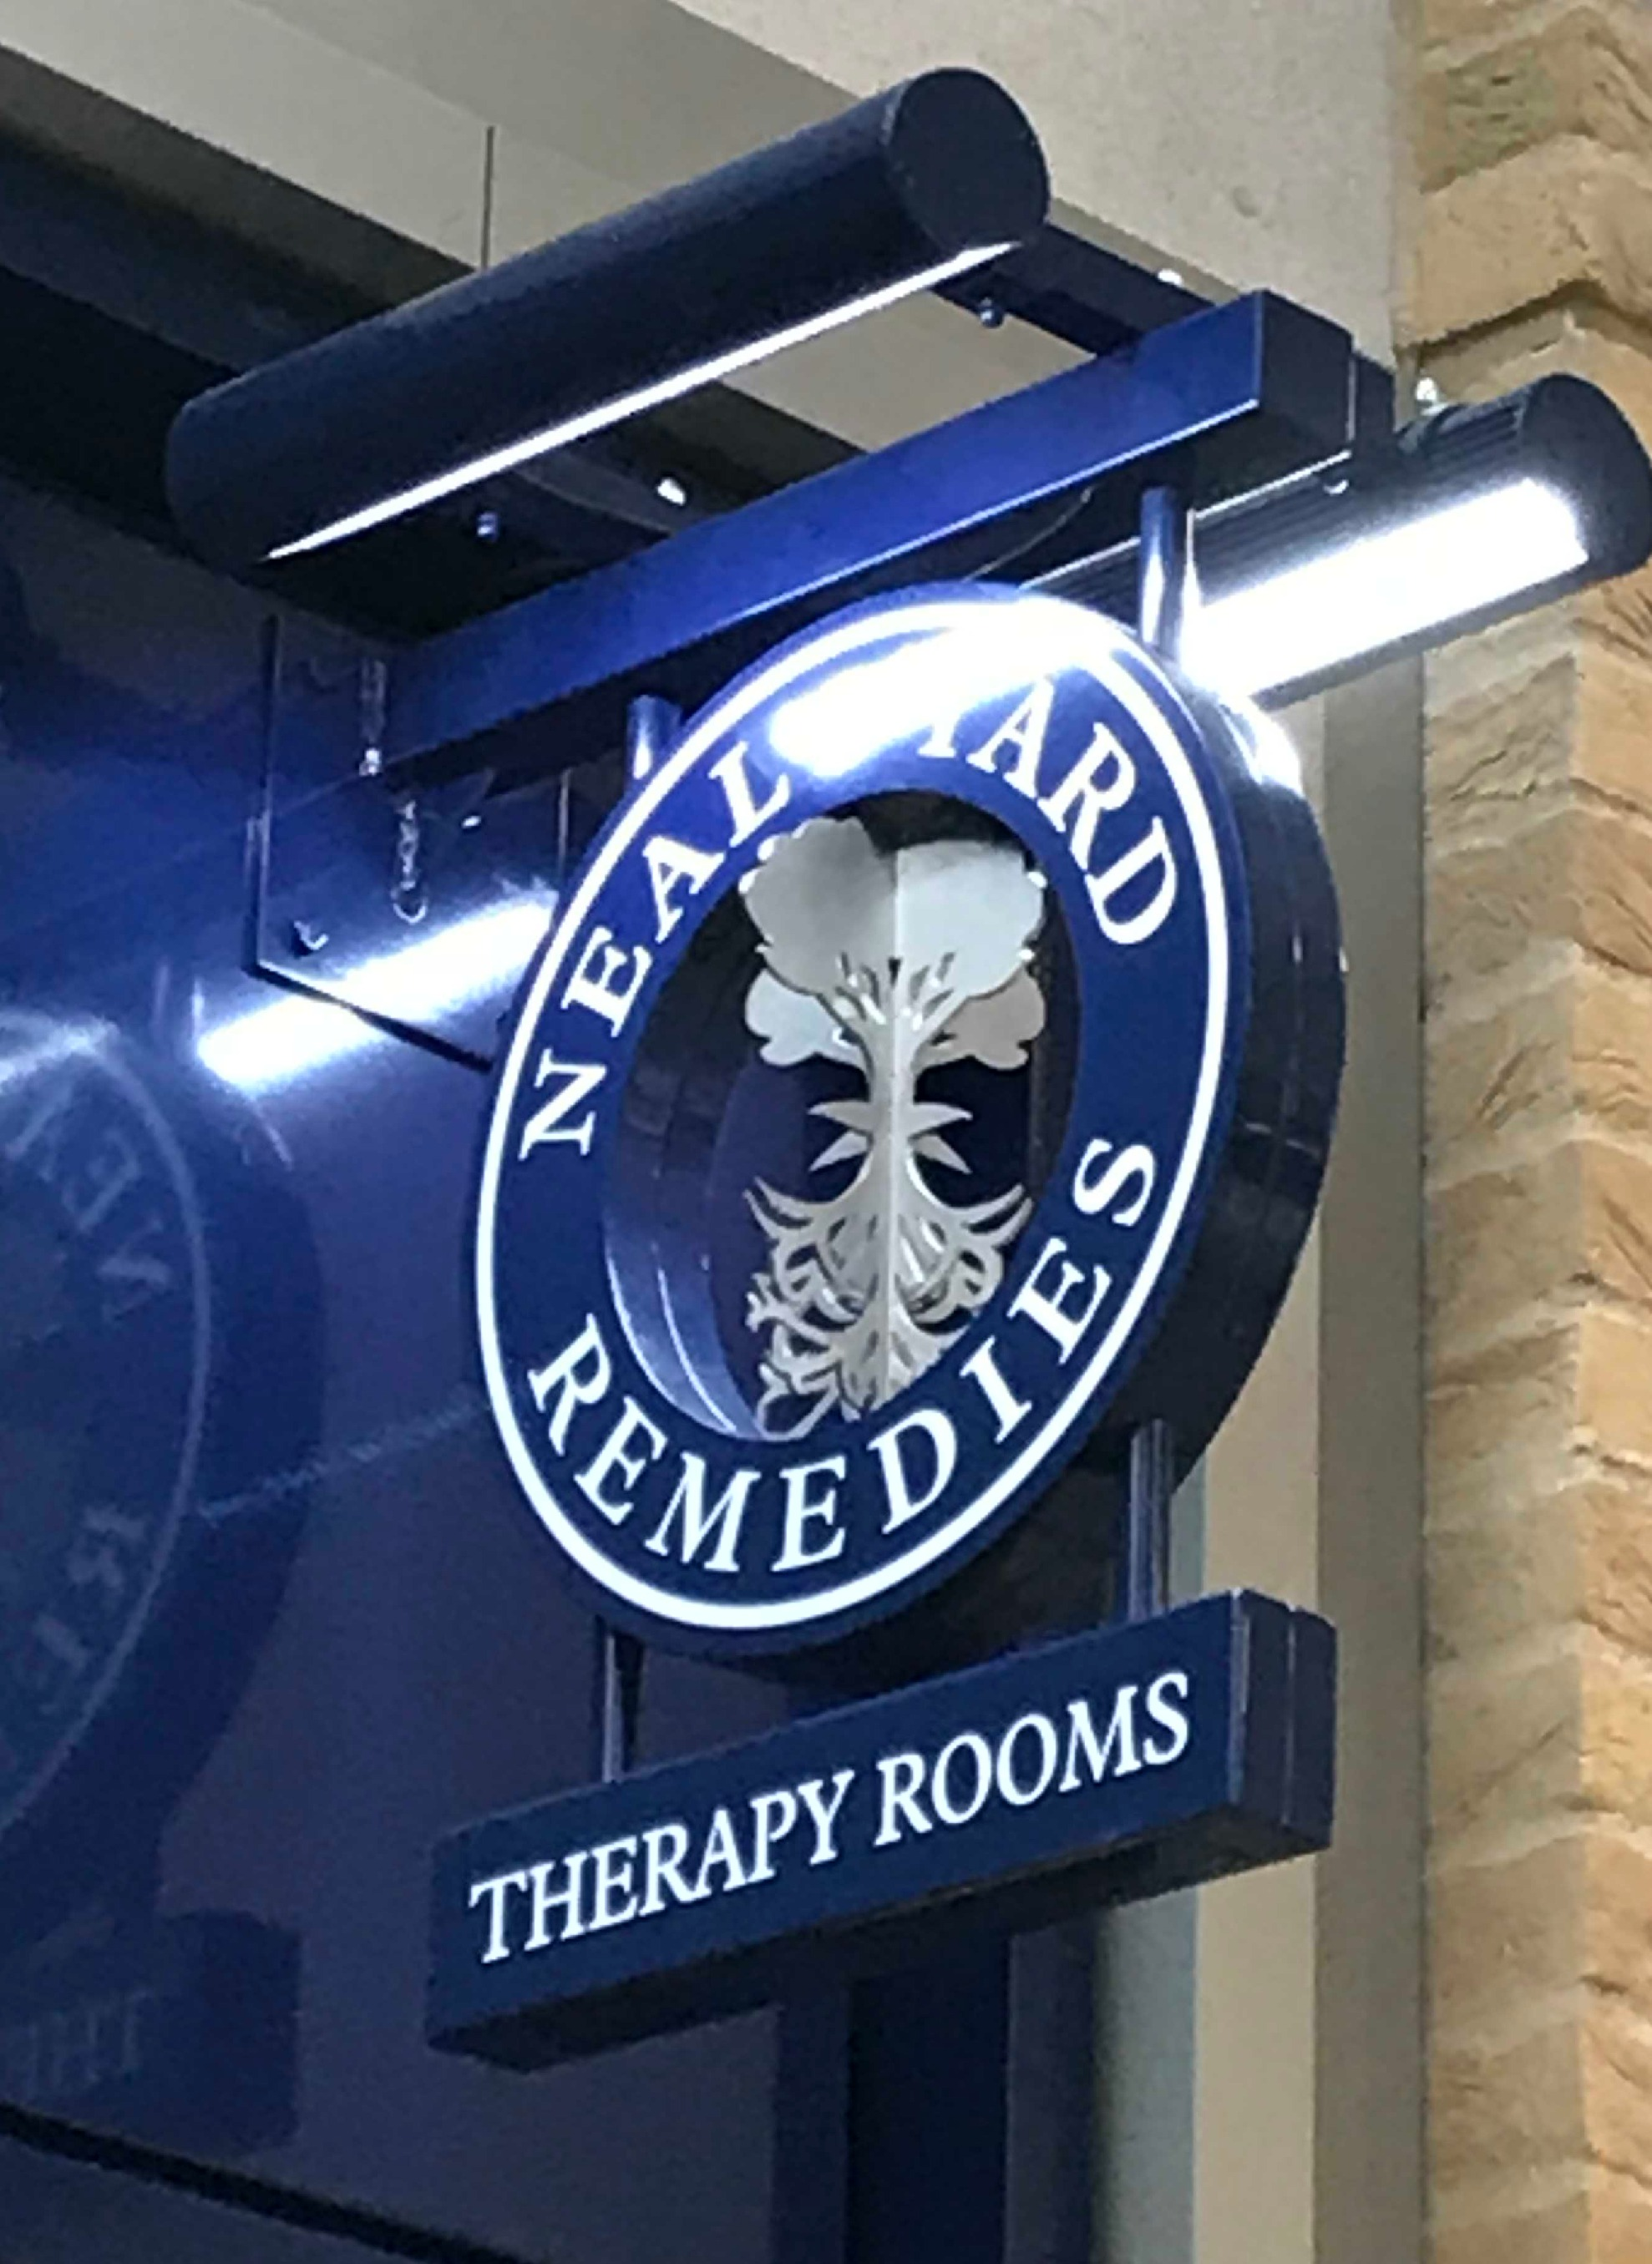 Neal's Yard Remedies_edited.jpg